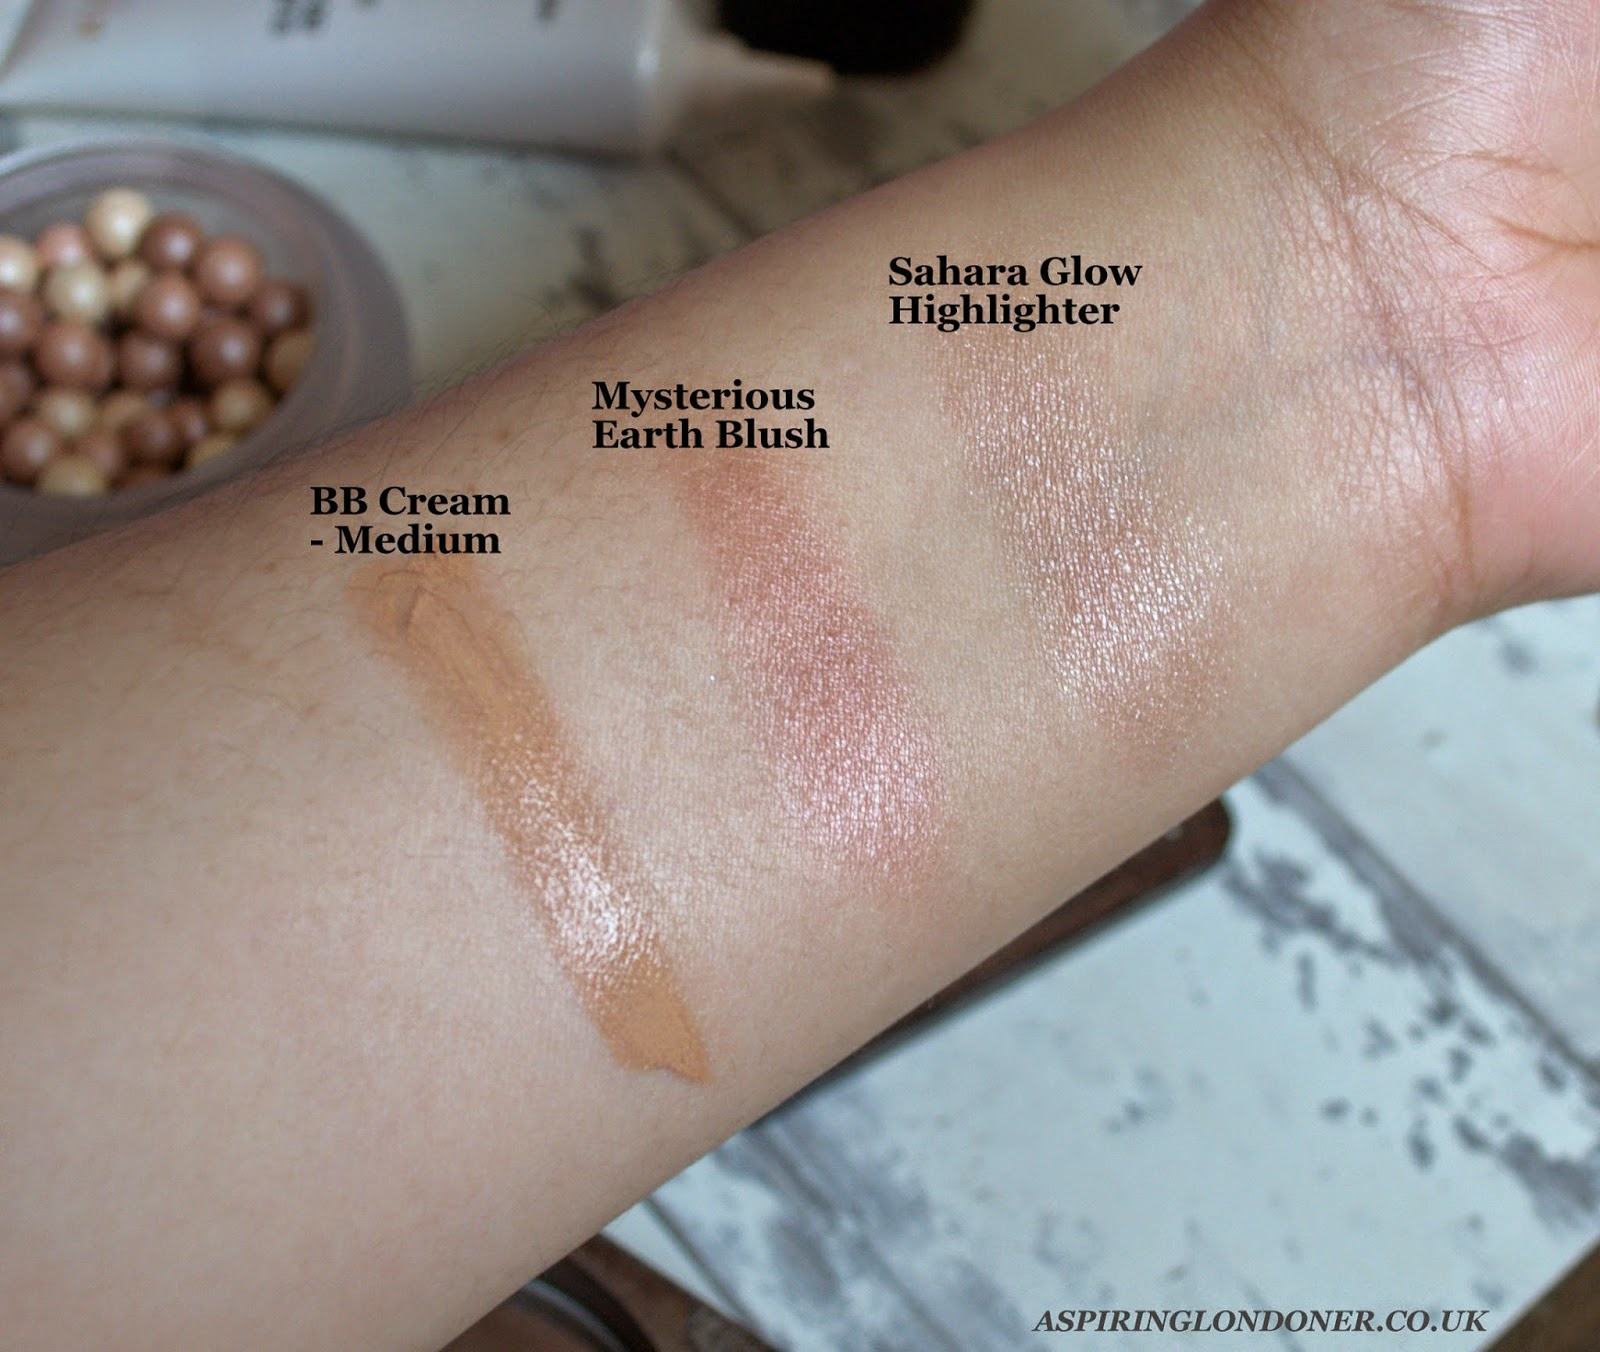 Kiko Cosmetics Modern Tribes BB Cream Baked Blush Sahara Highlighter Swatch - Aspiring Londoner